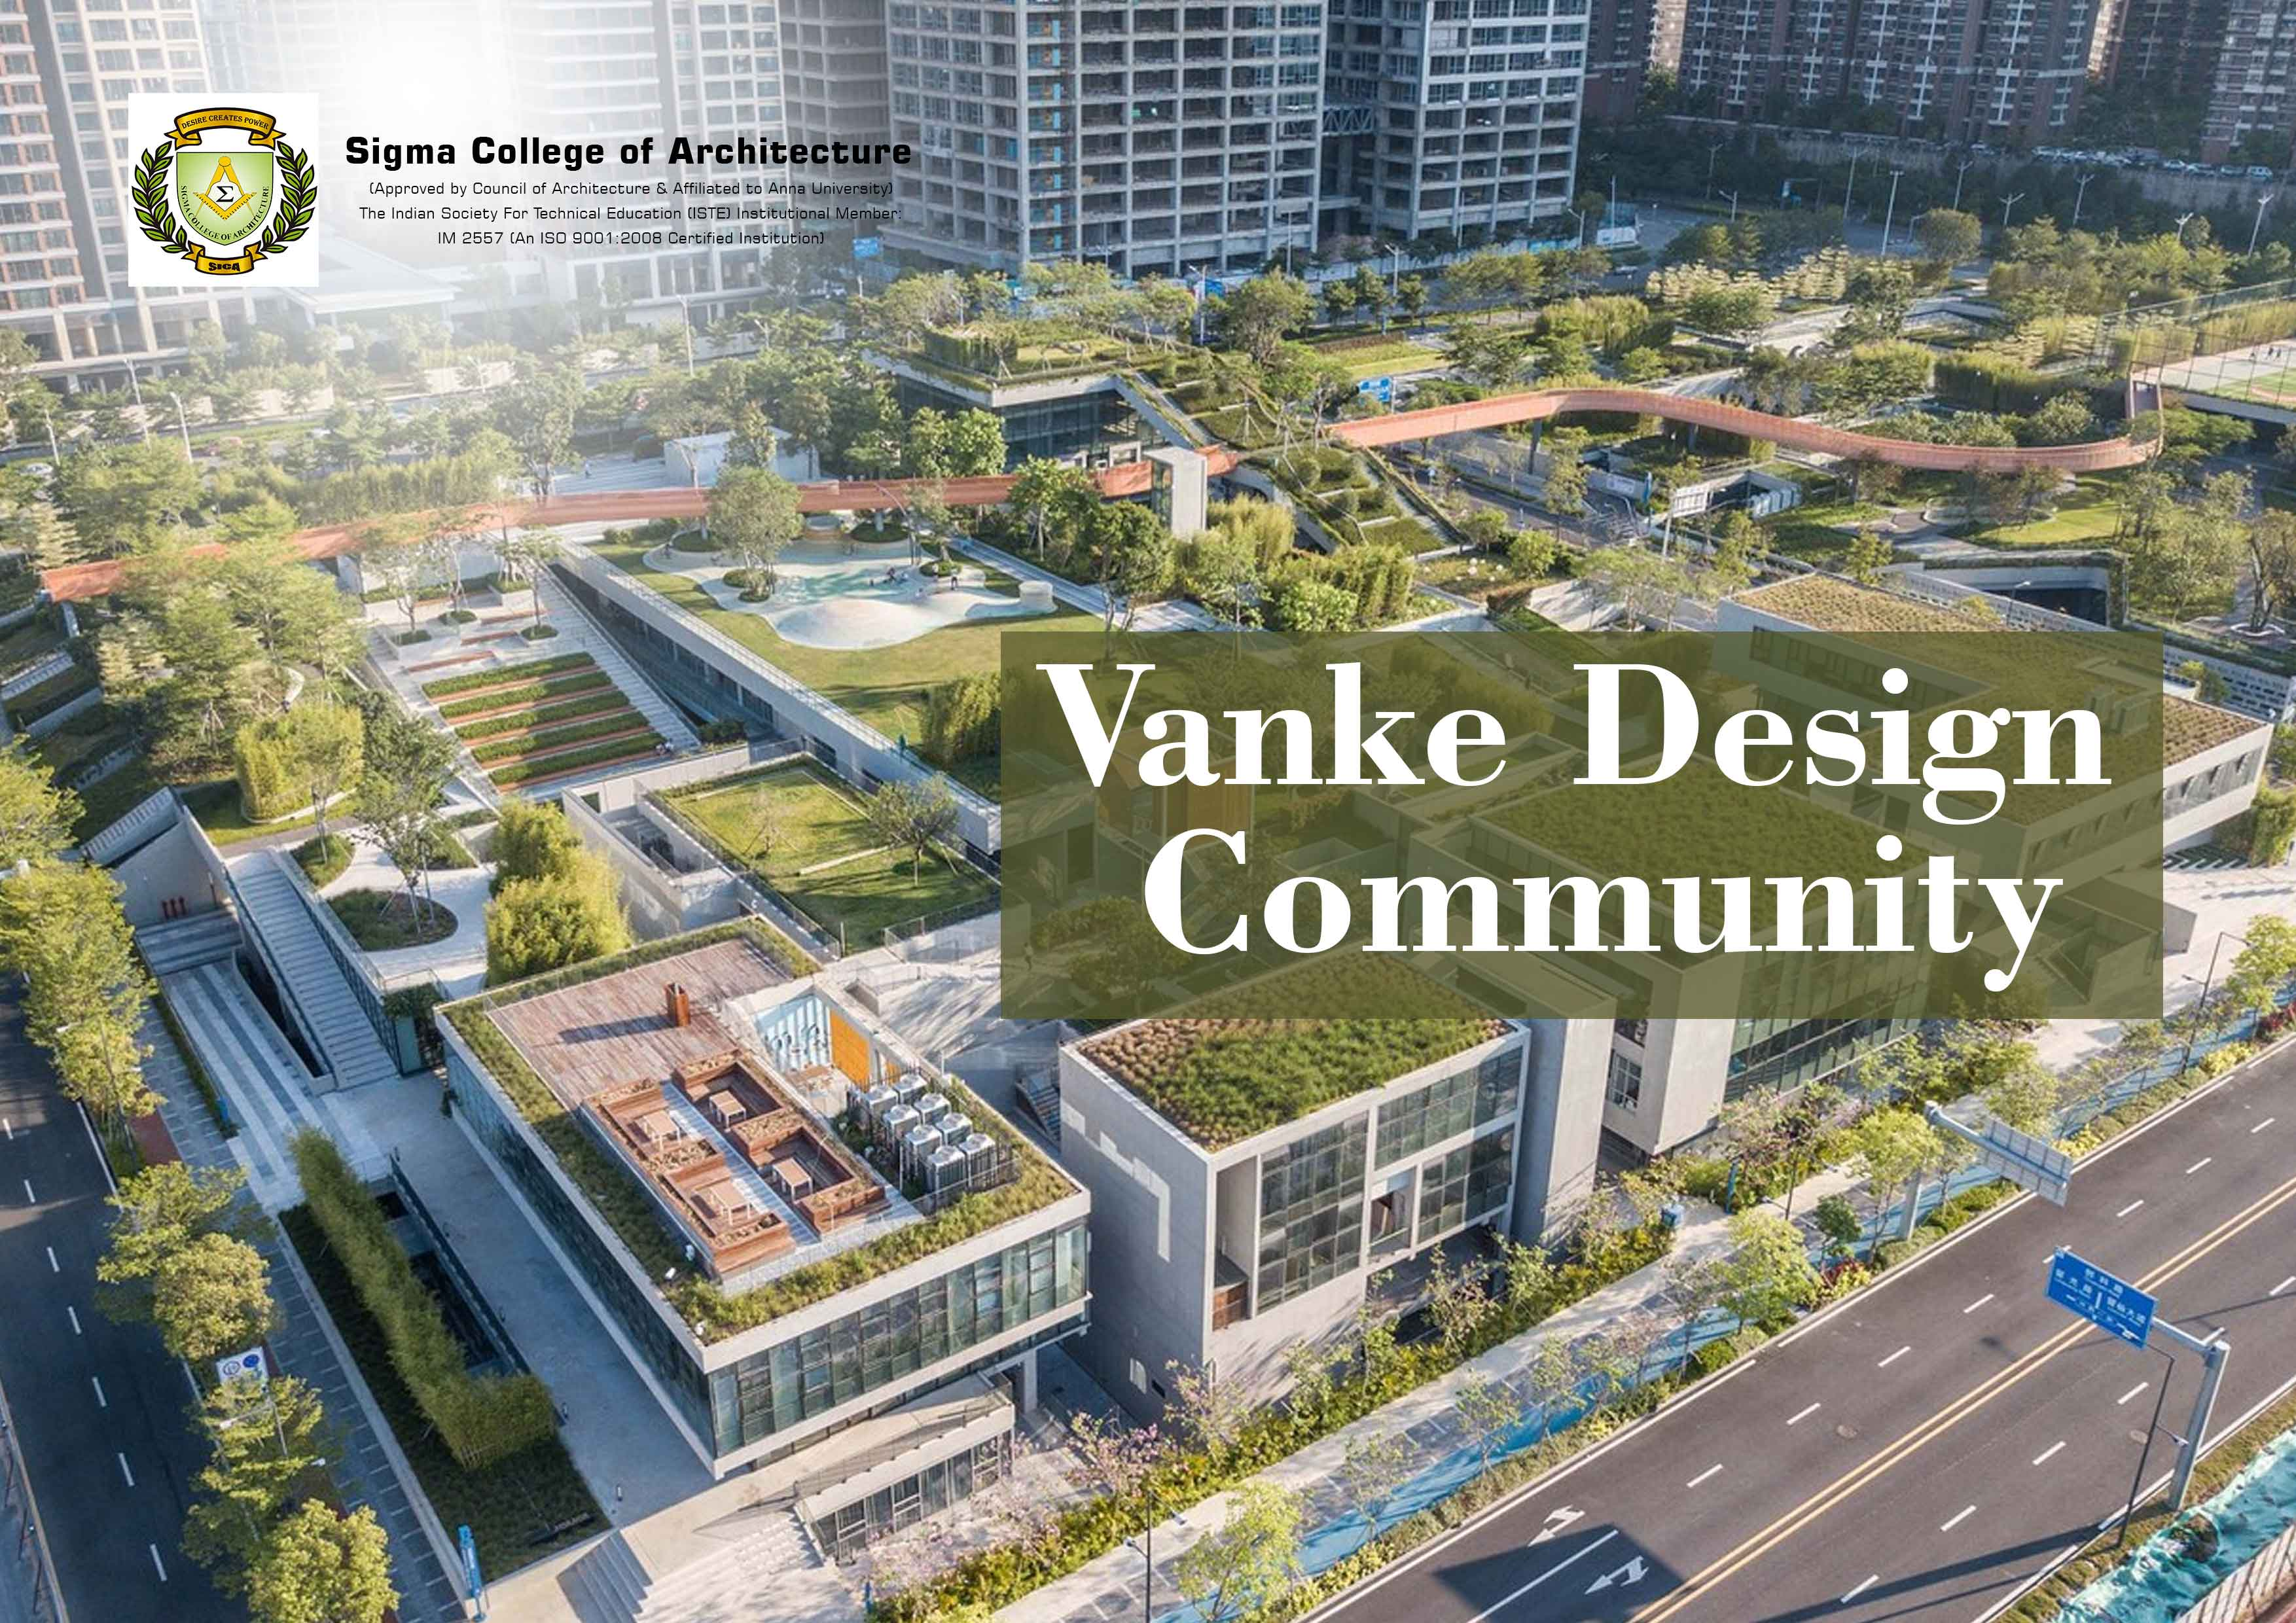 Vanke Design Community